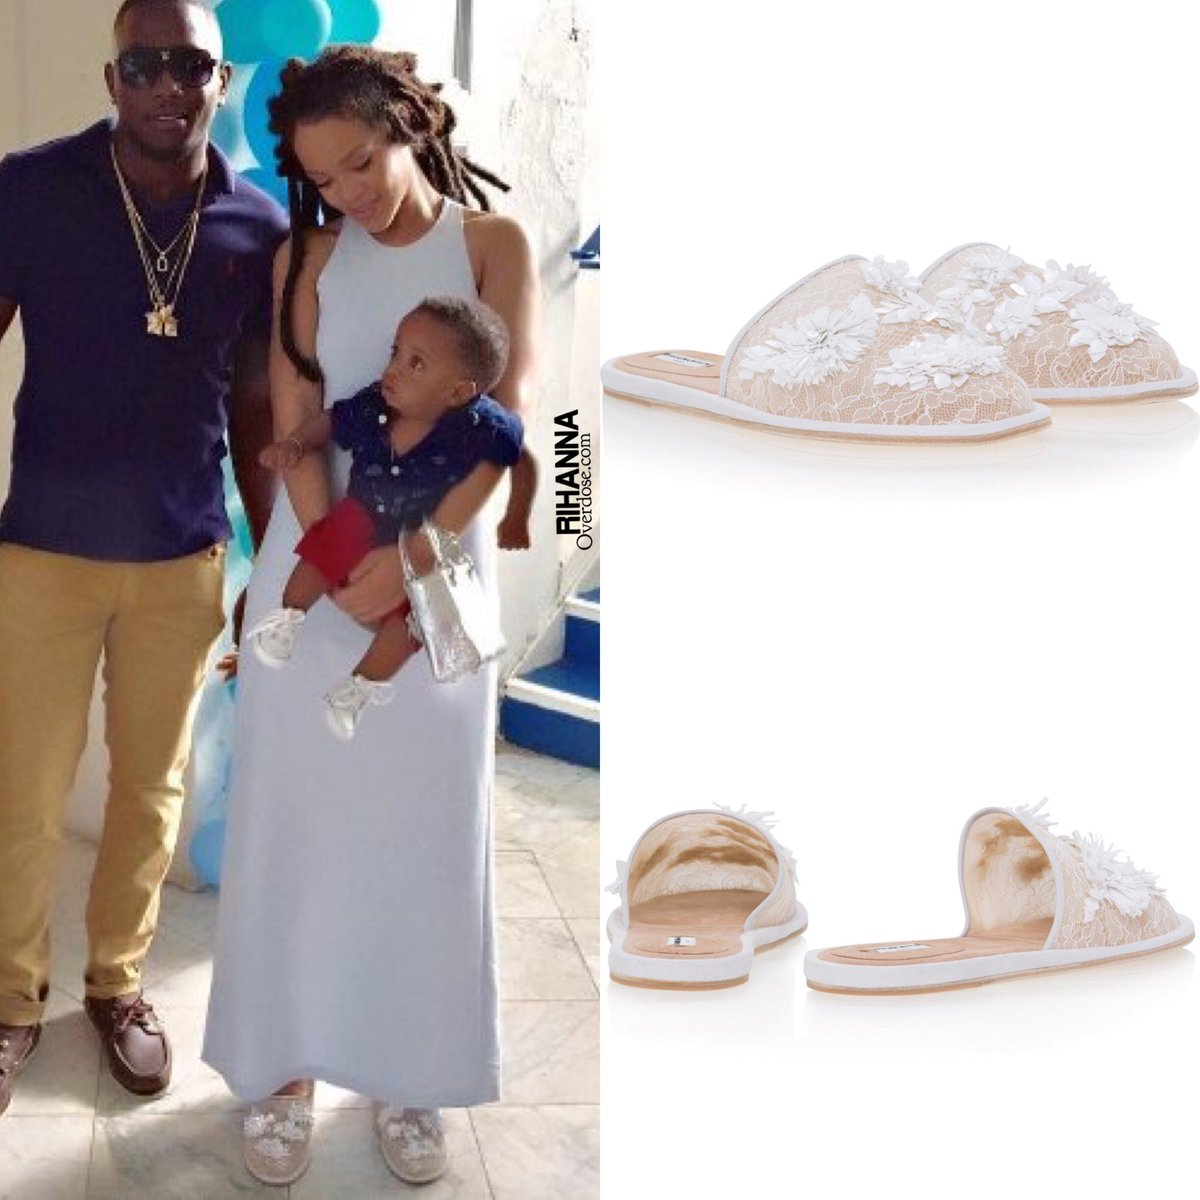 Rihanna is wearing Spring 2016 $1,545 @Balenciaga Beaded Lace Slippers today in Barbados » https://t.co/rUUFFs1bnI https://t.co/PyIxwq5iQi